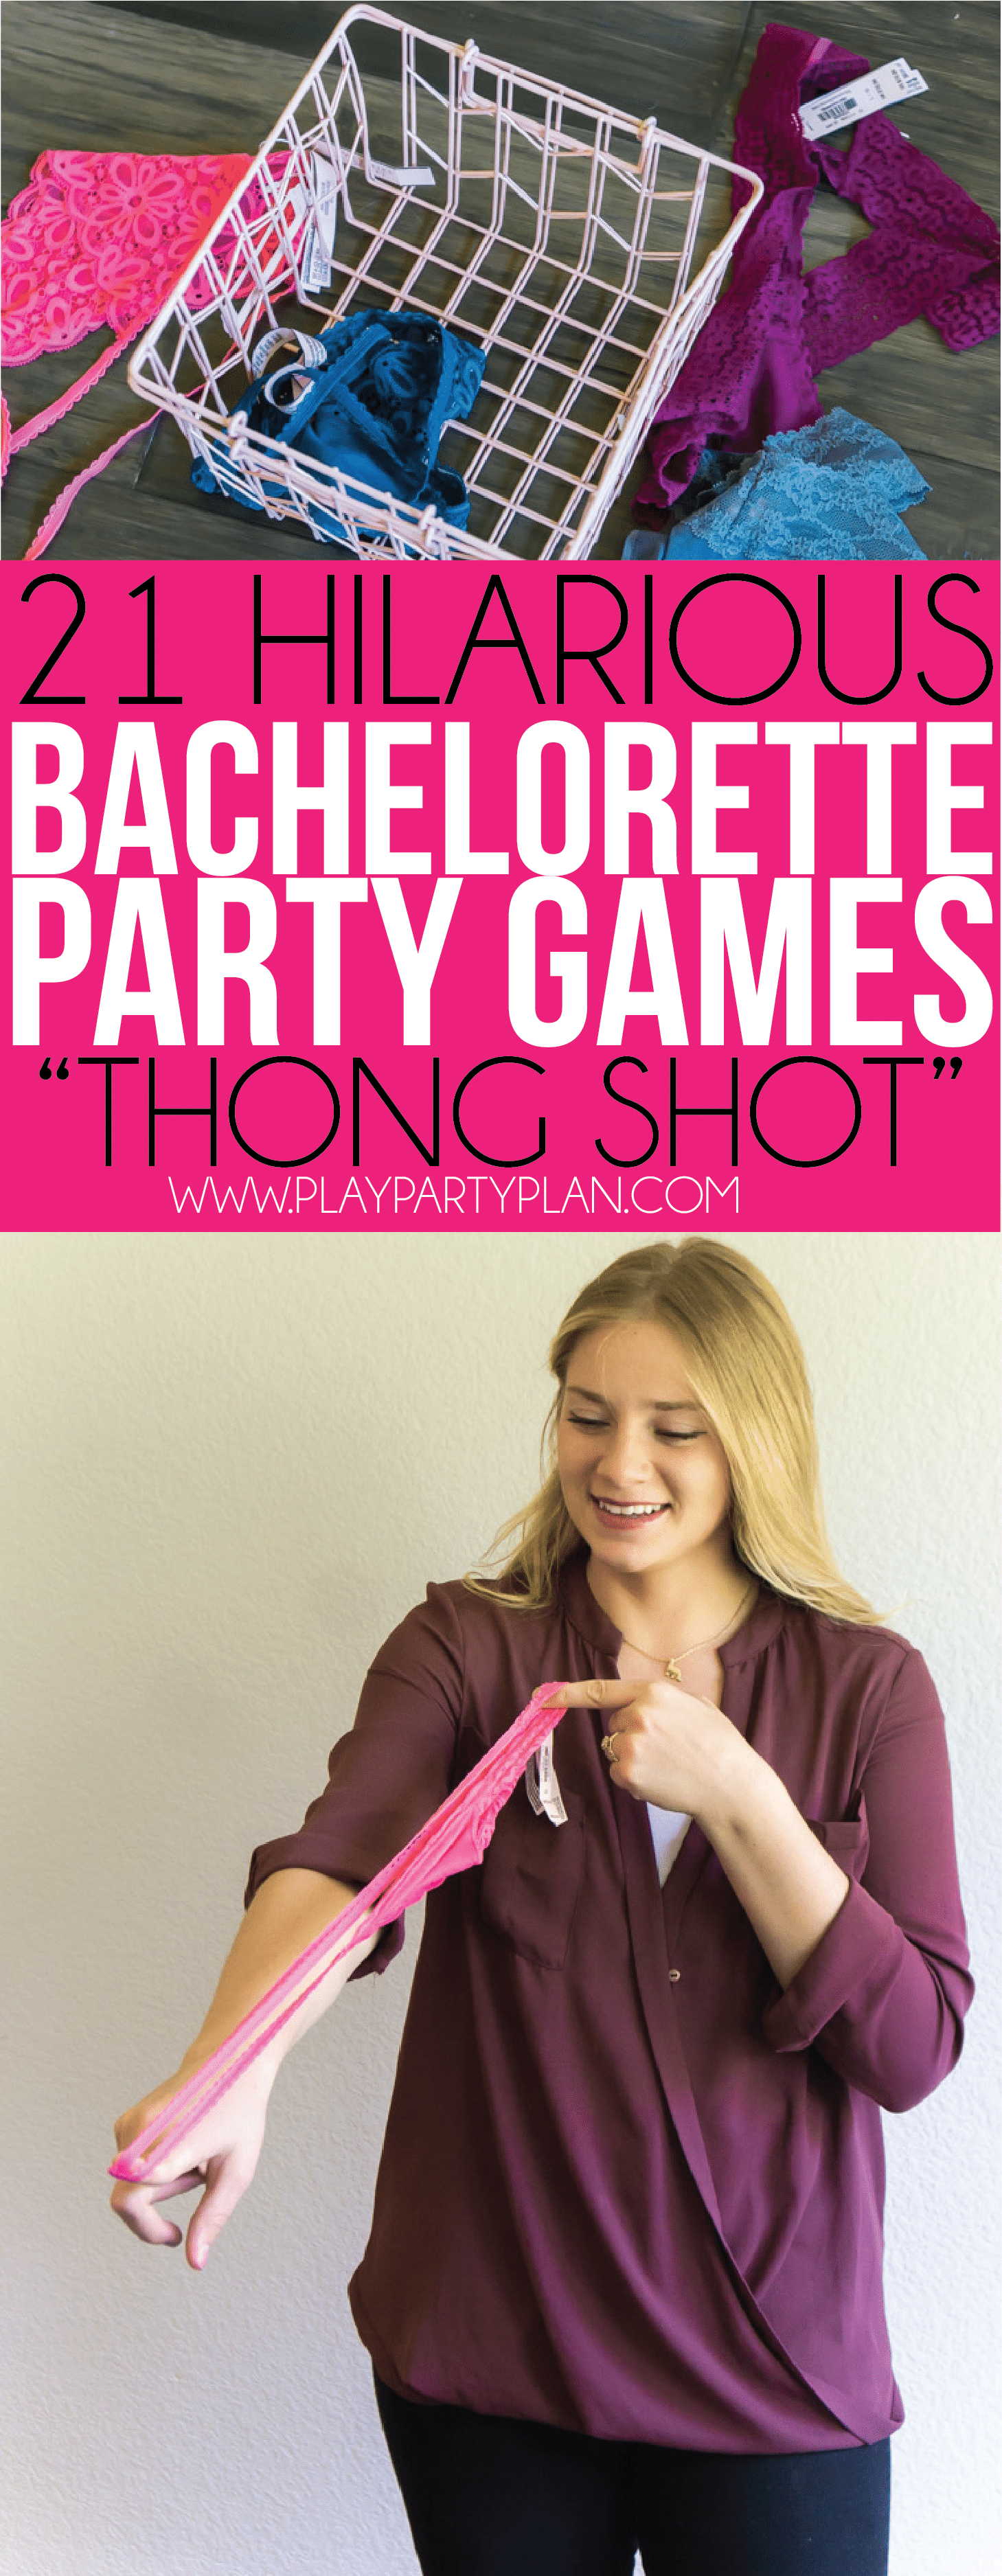 21 hilarious bachelorette party games you need to play right now